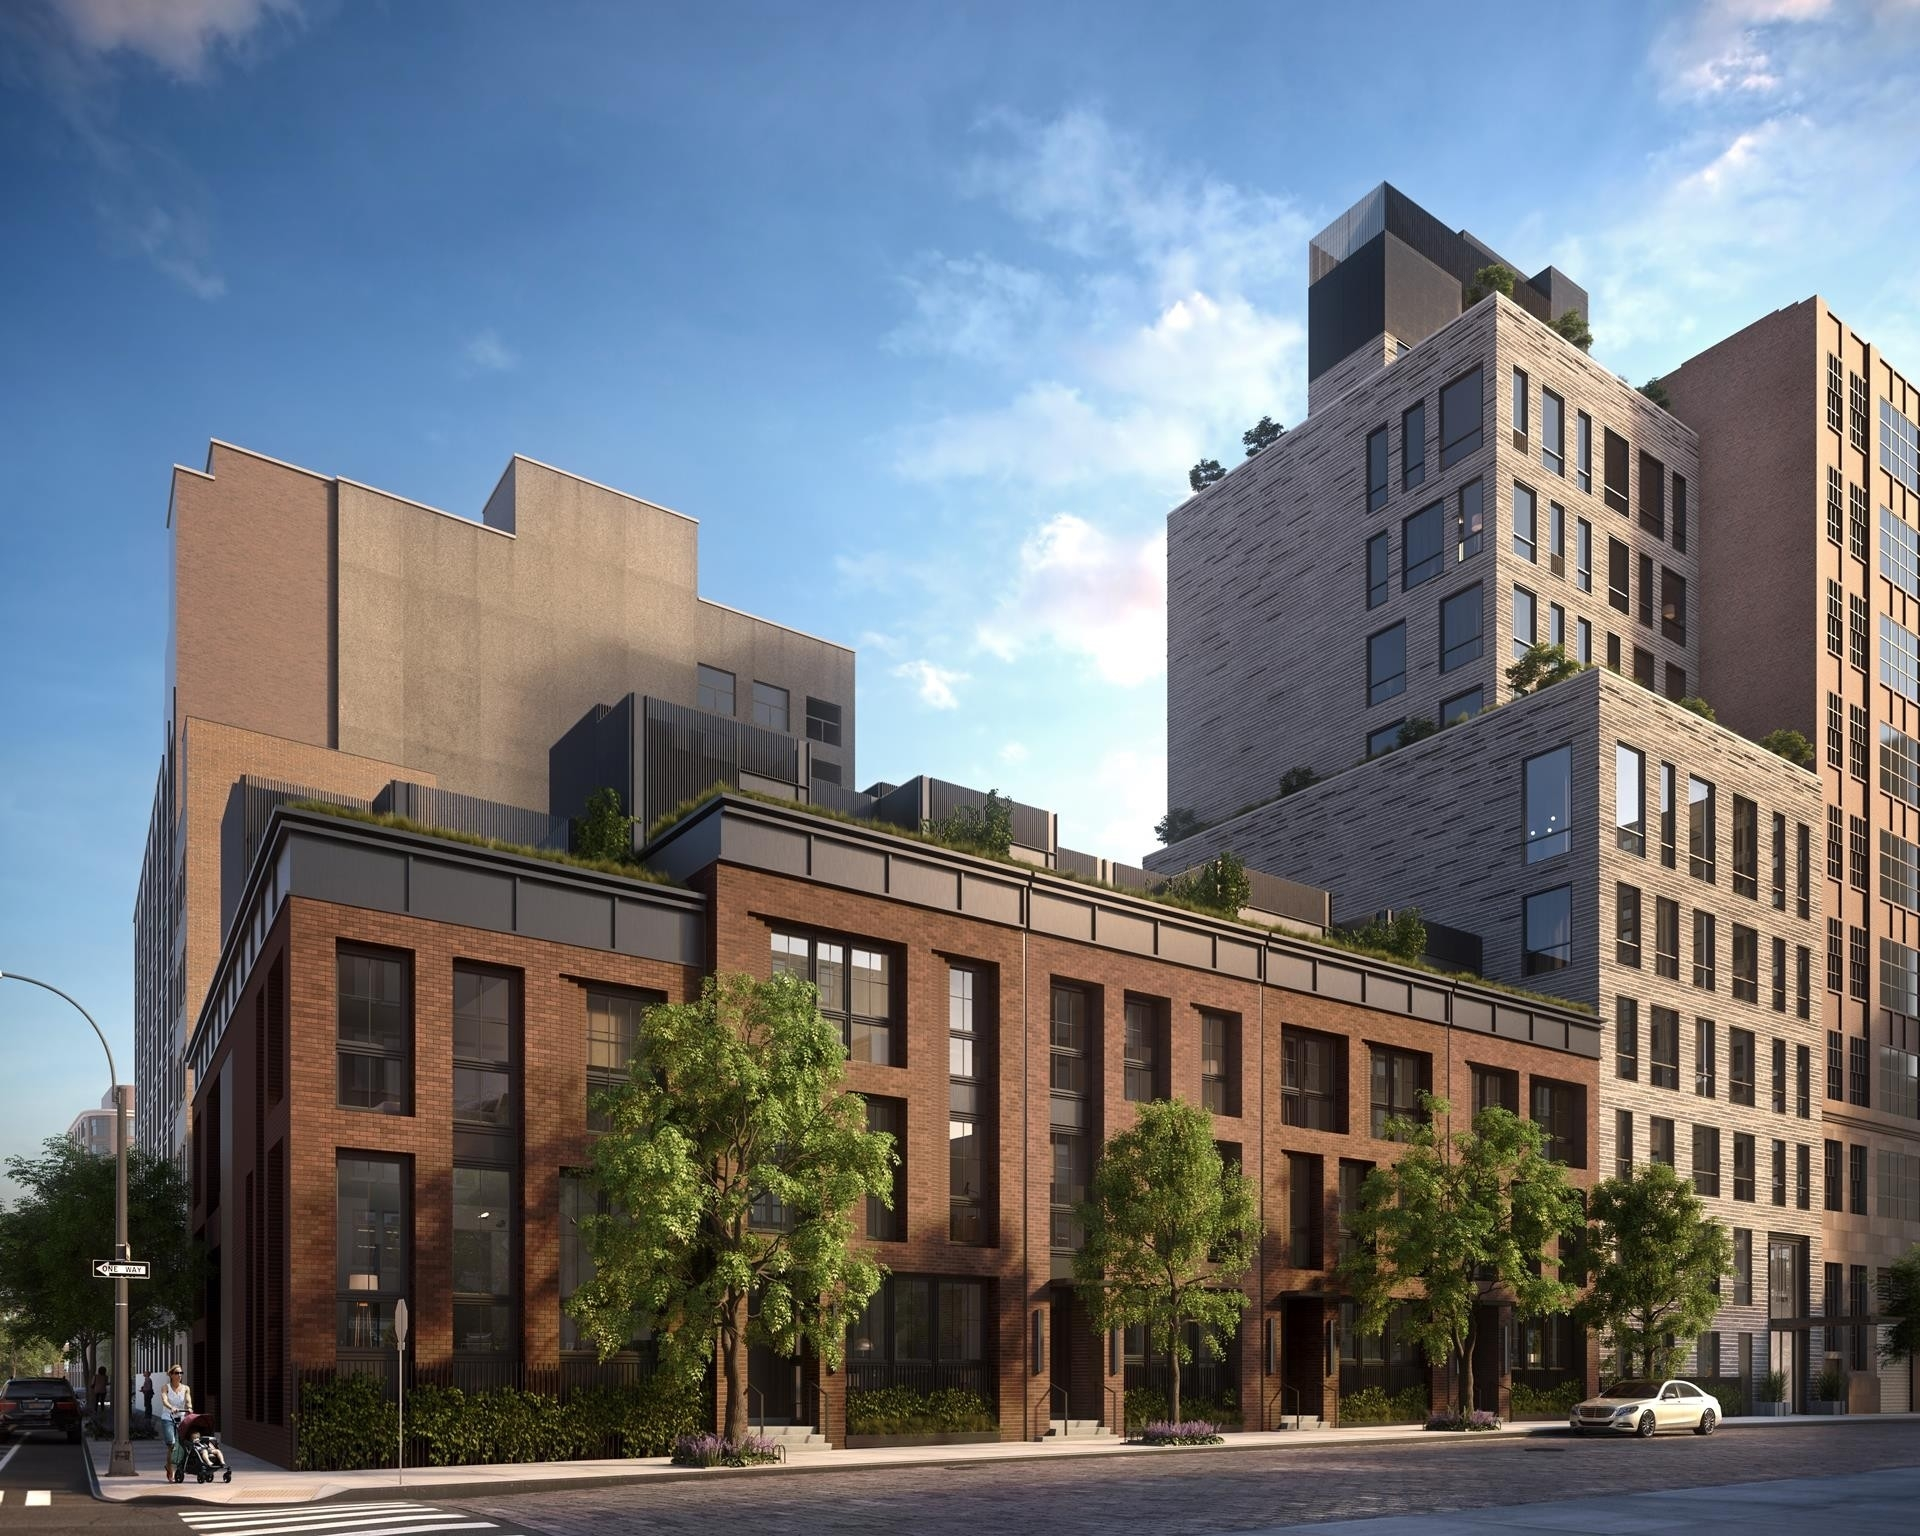 11. Condominiums for Sale at 111 Leroy St, 7 West Village, New York, NY 10014